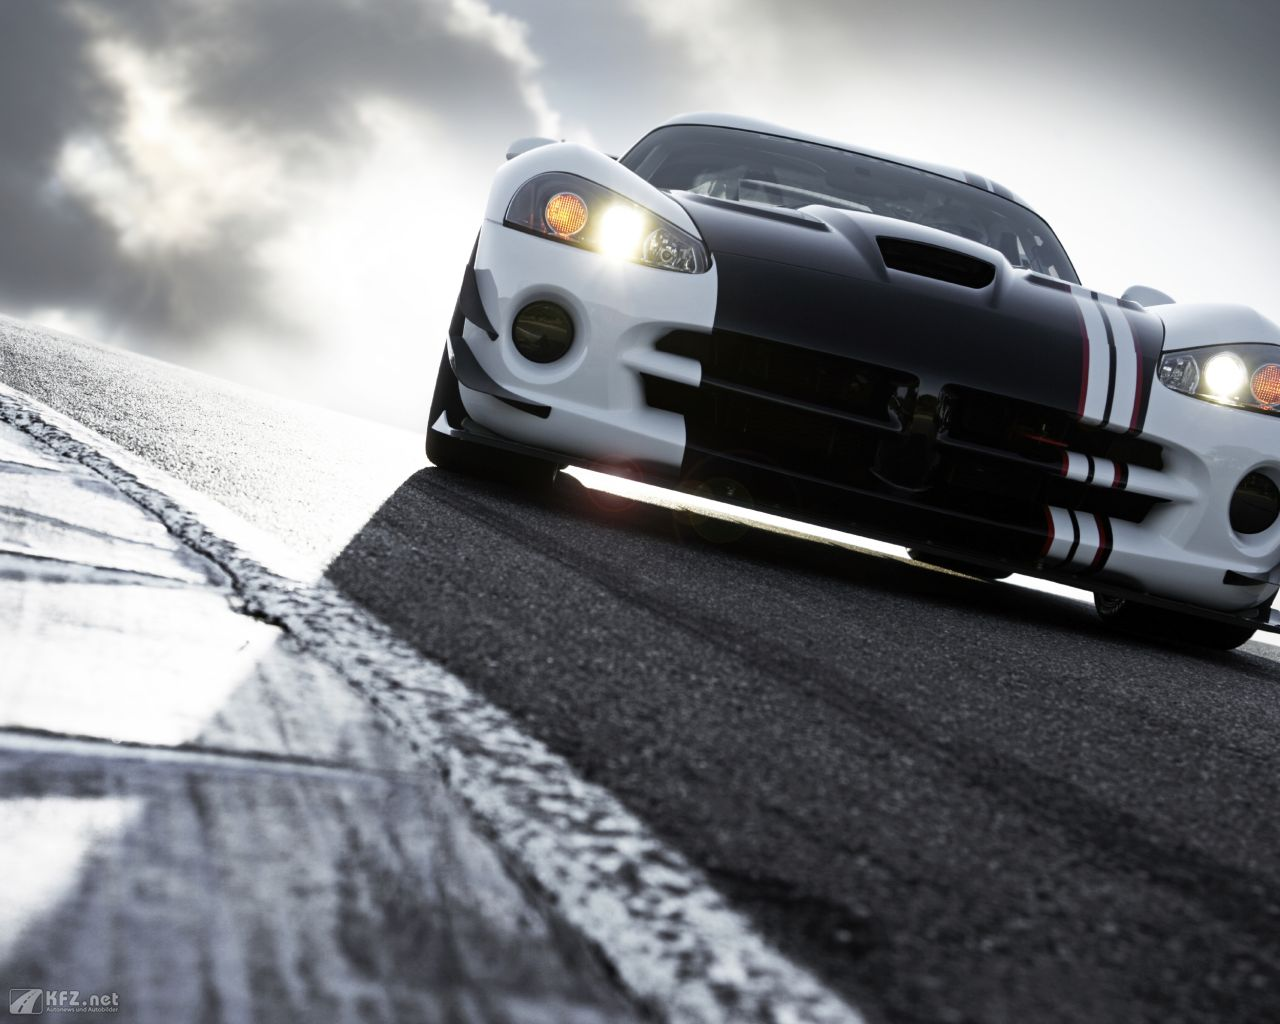 chrysler-dodge-viper-1280x1024-11